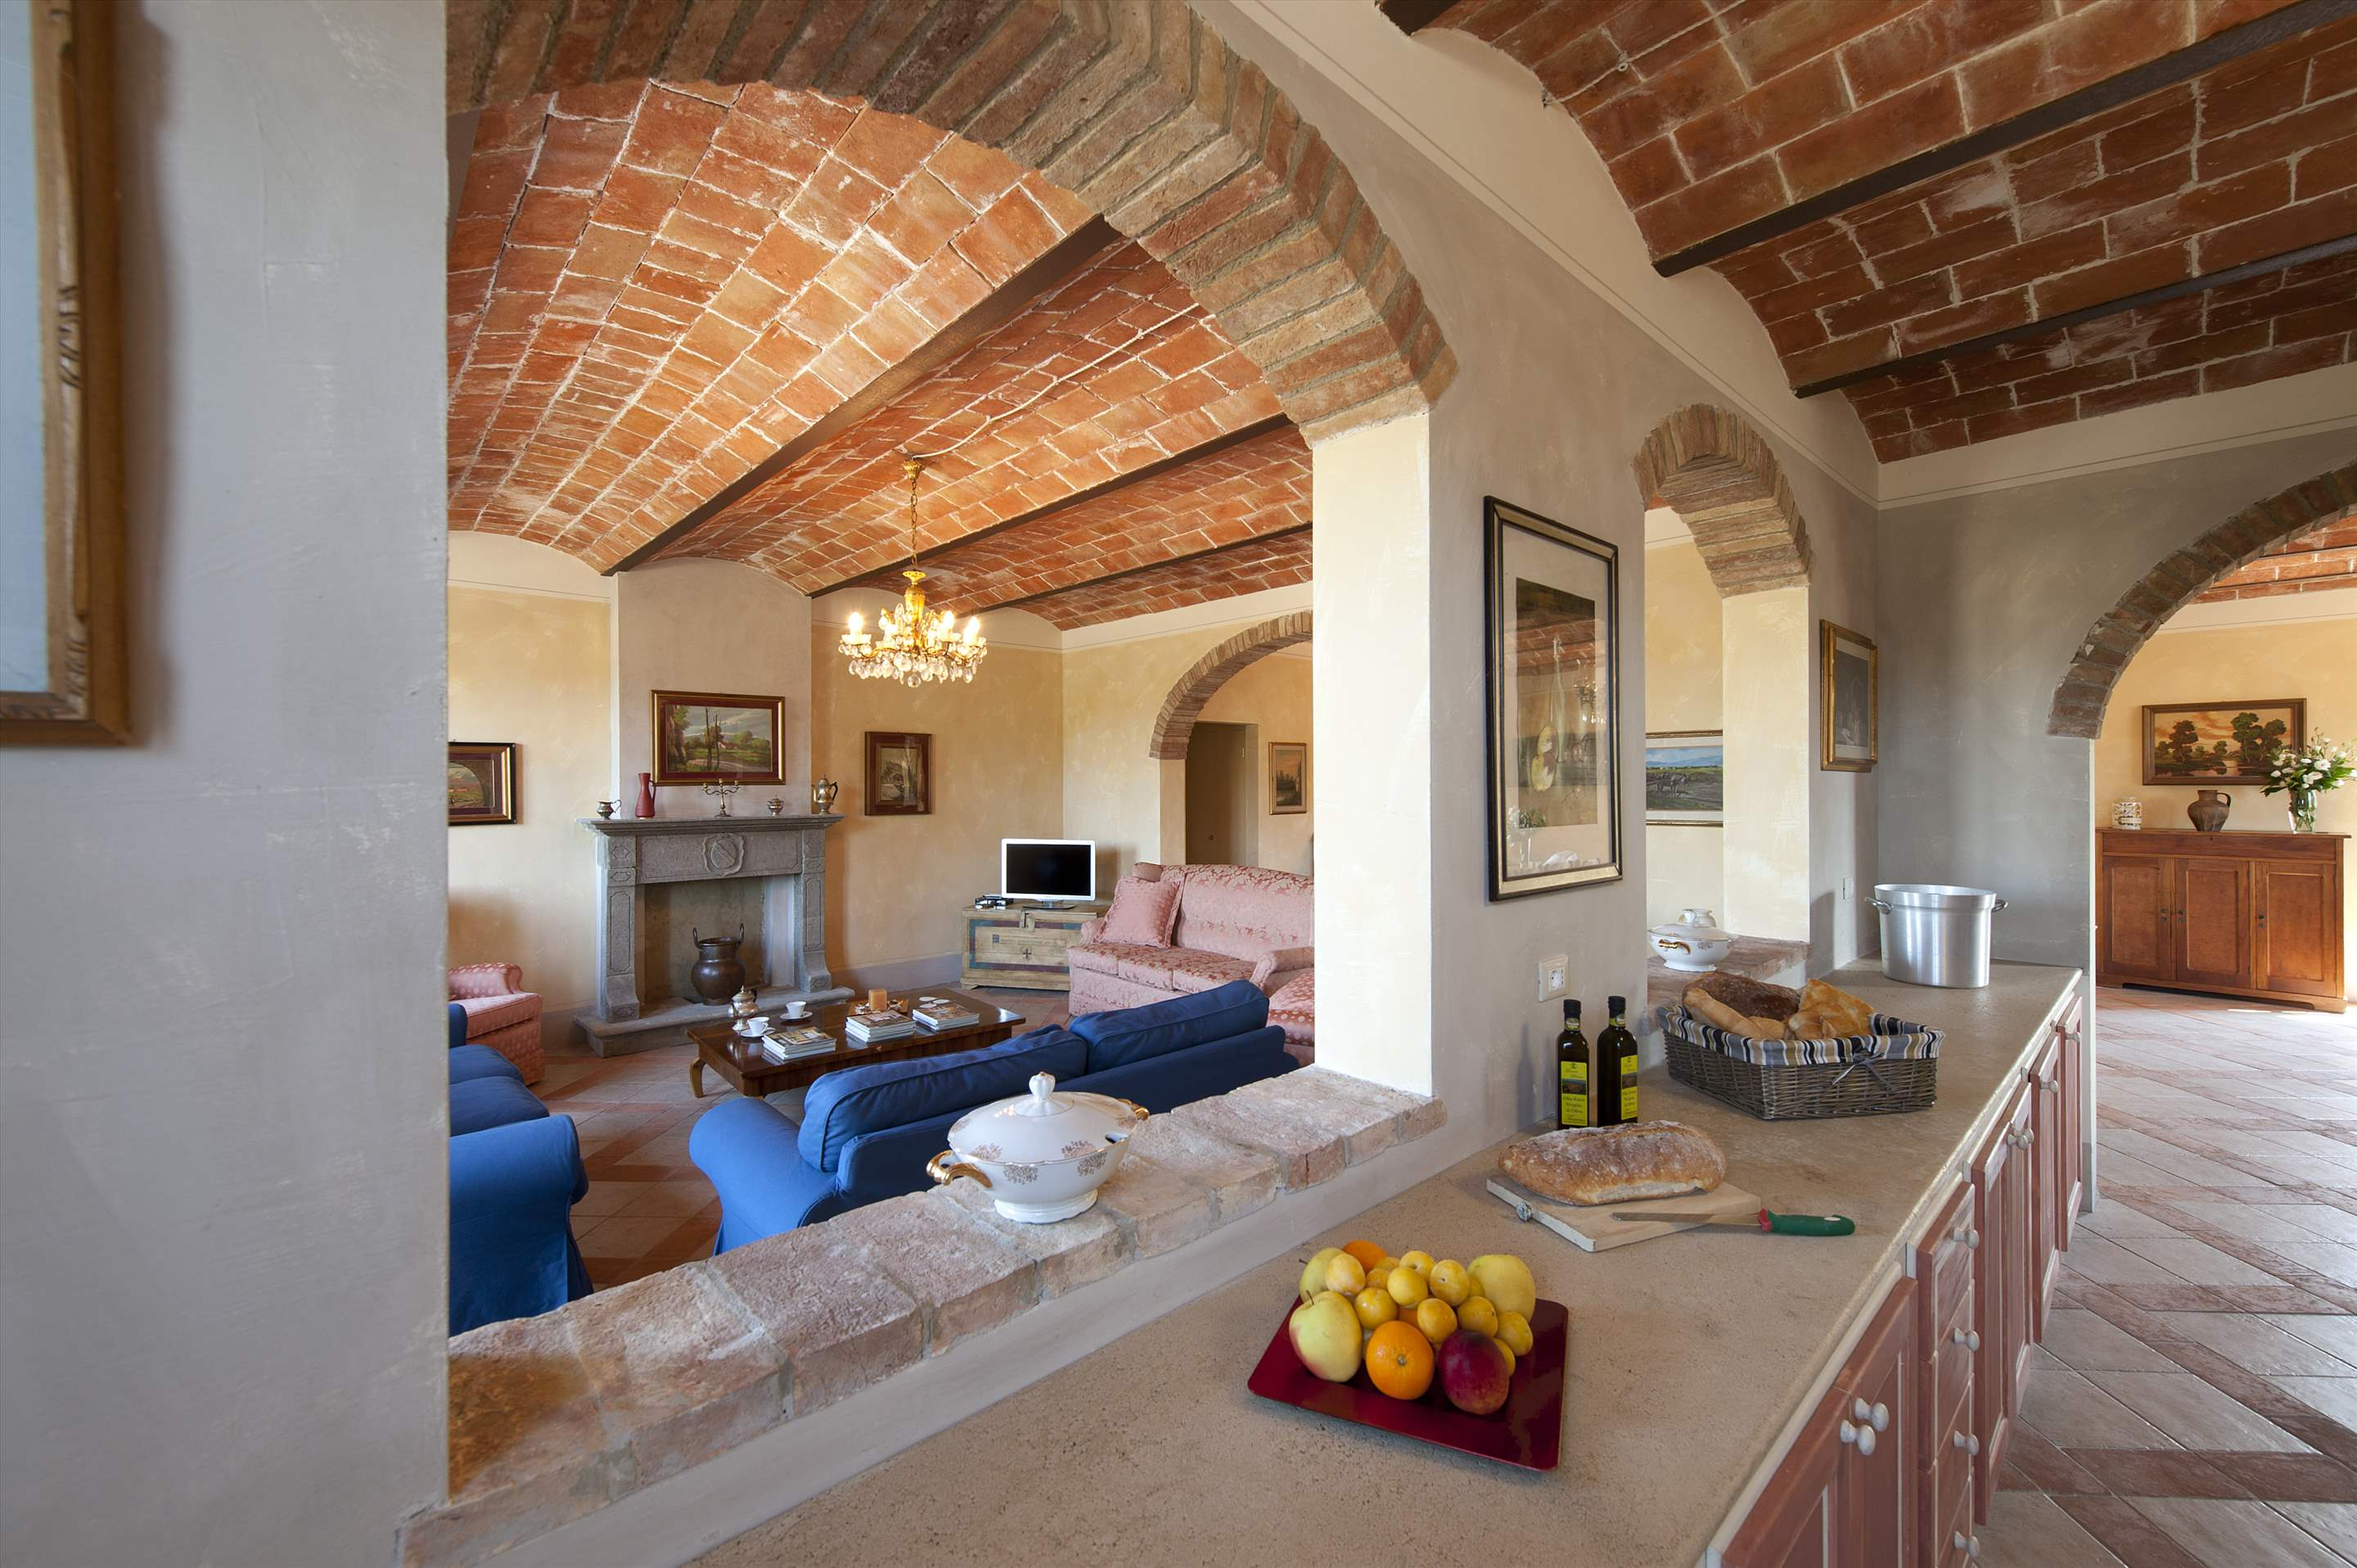 Podere Casacce, Ground Floor, 4 bedroom villa in Tuscany Coast, Tuscany Photo #7